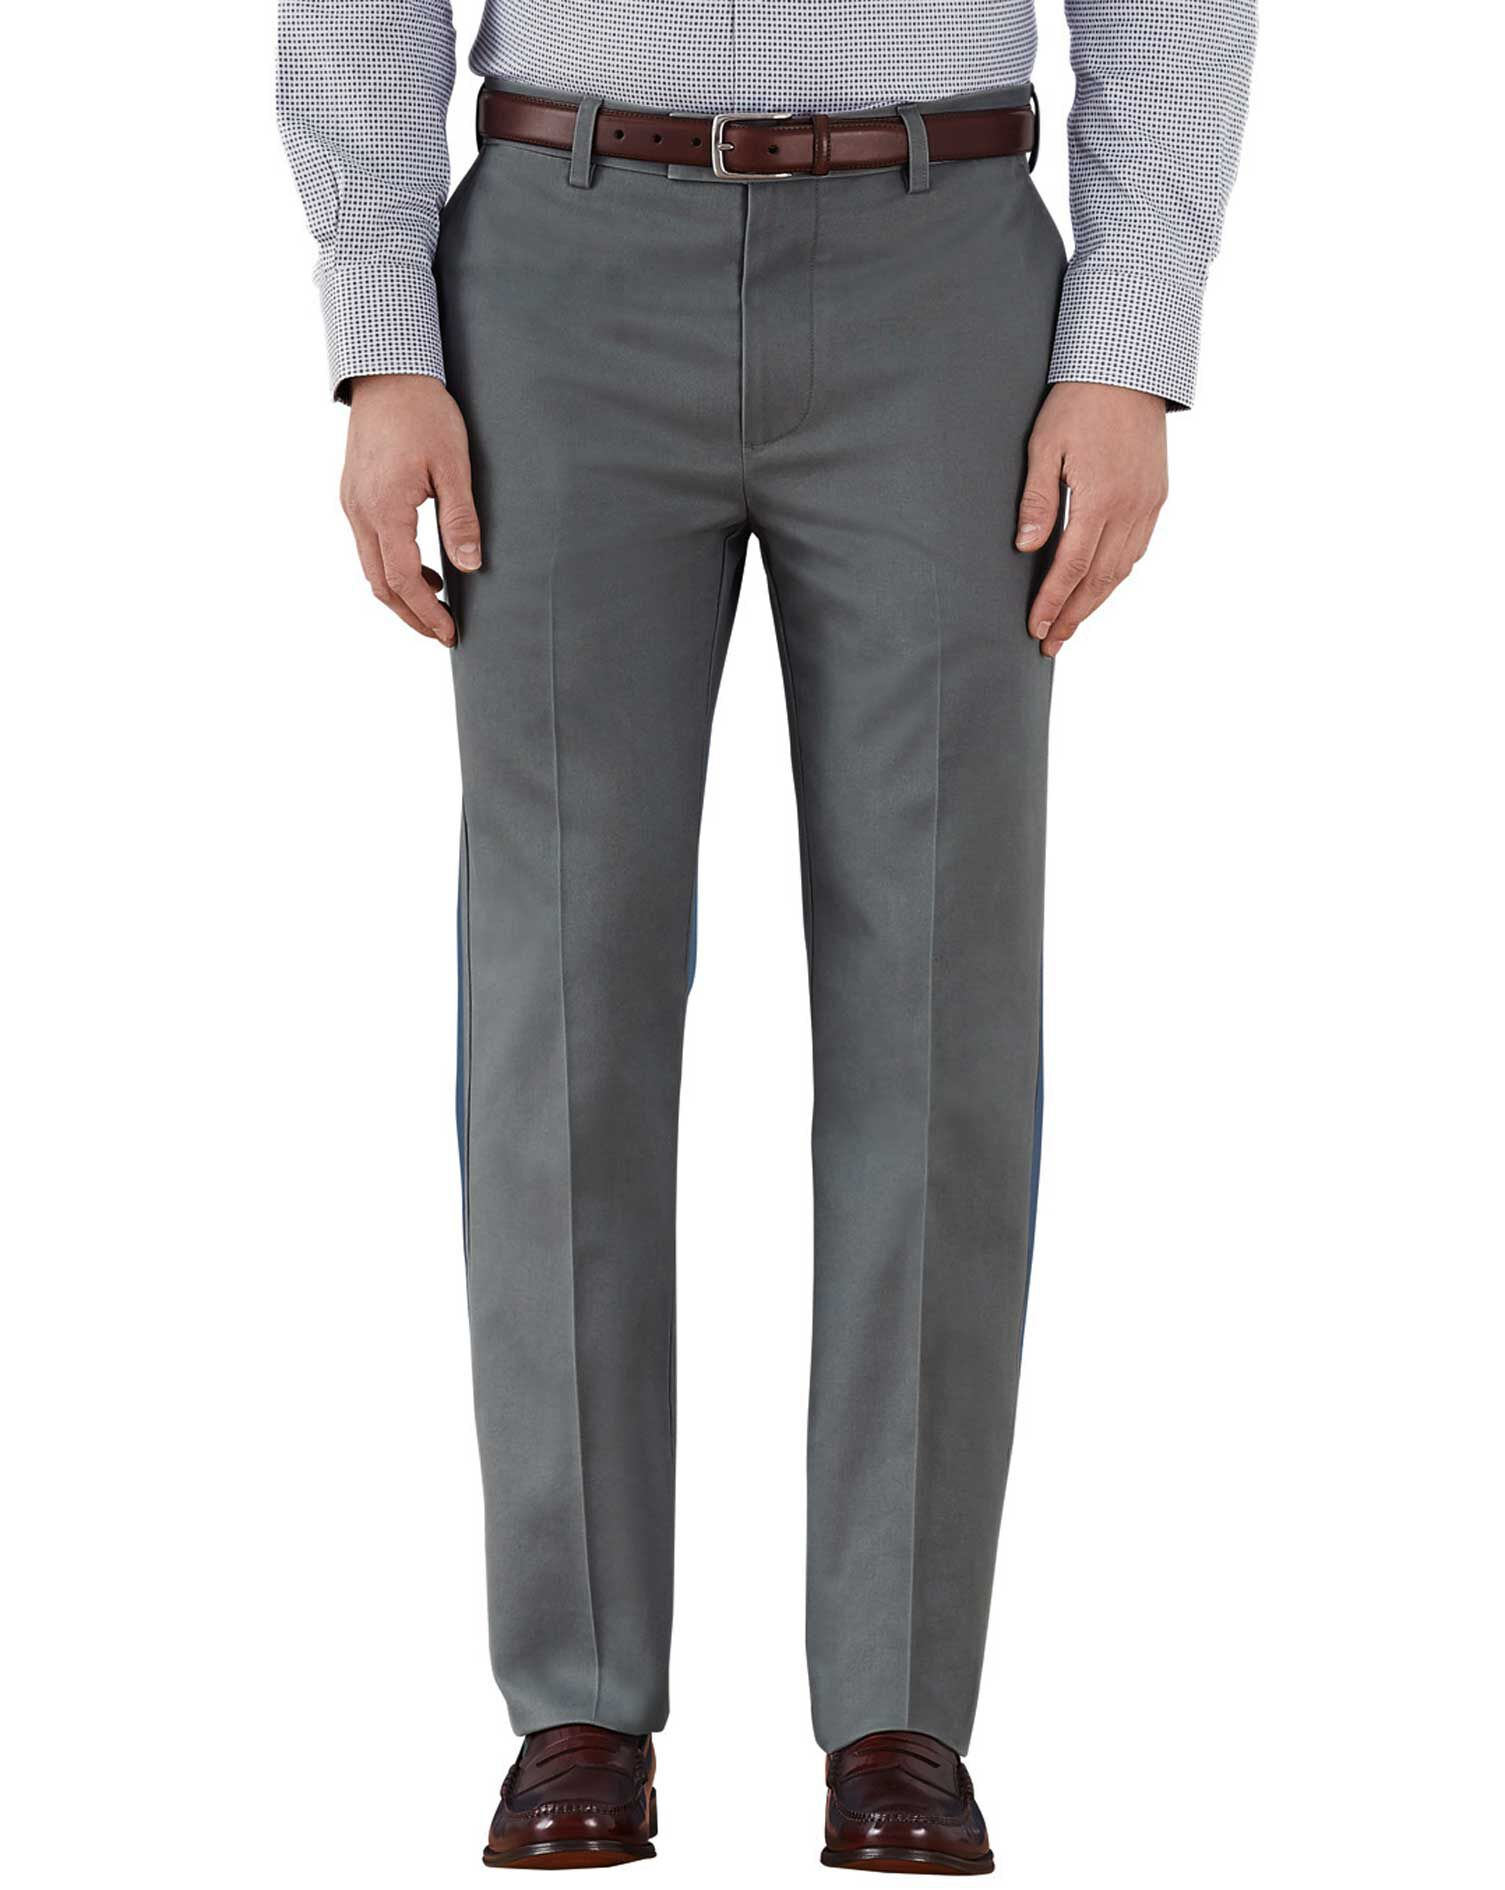 Grey Slim Fit Flat Front Weekend Cotton Chino Trousers Size W38 L29 by Charles Tyrwhitt